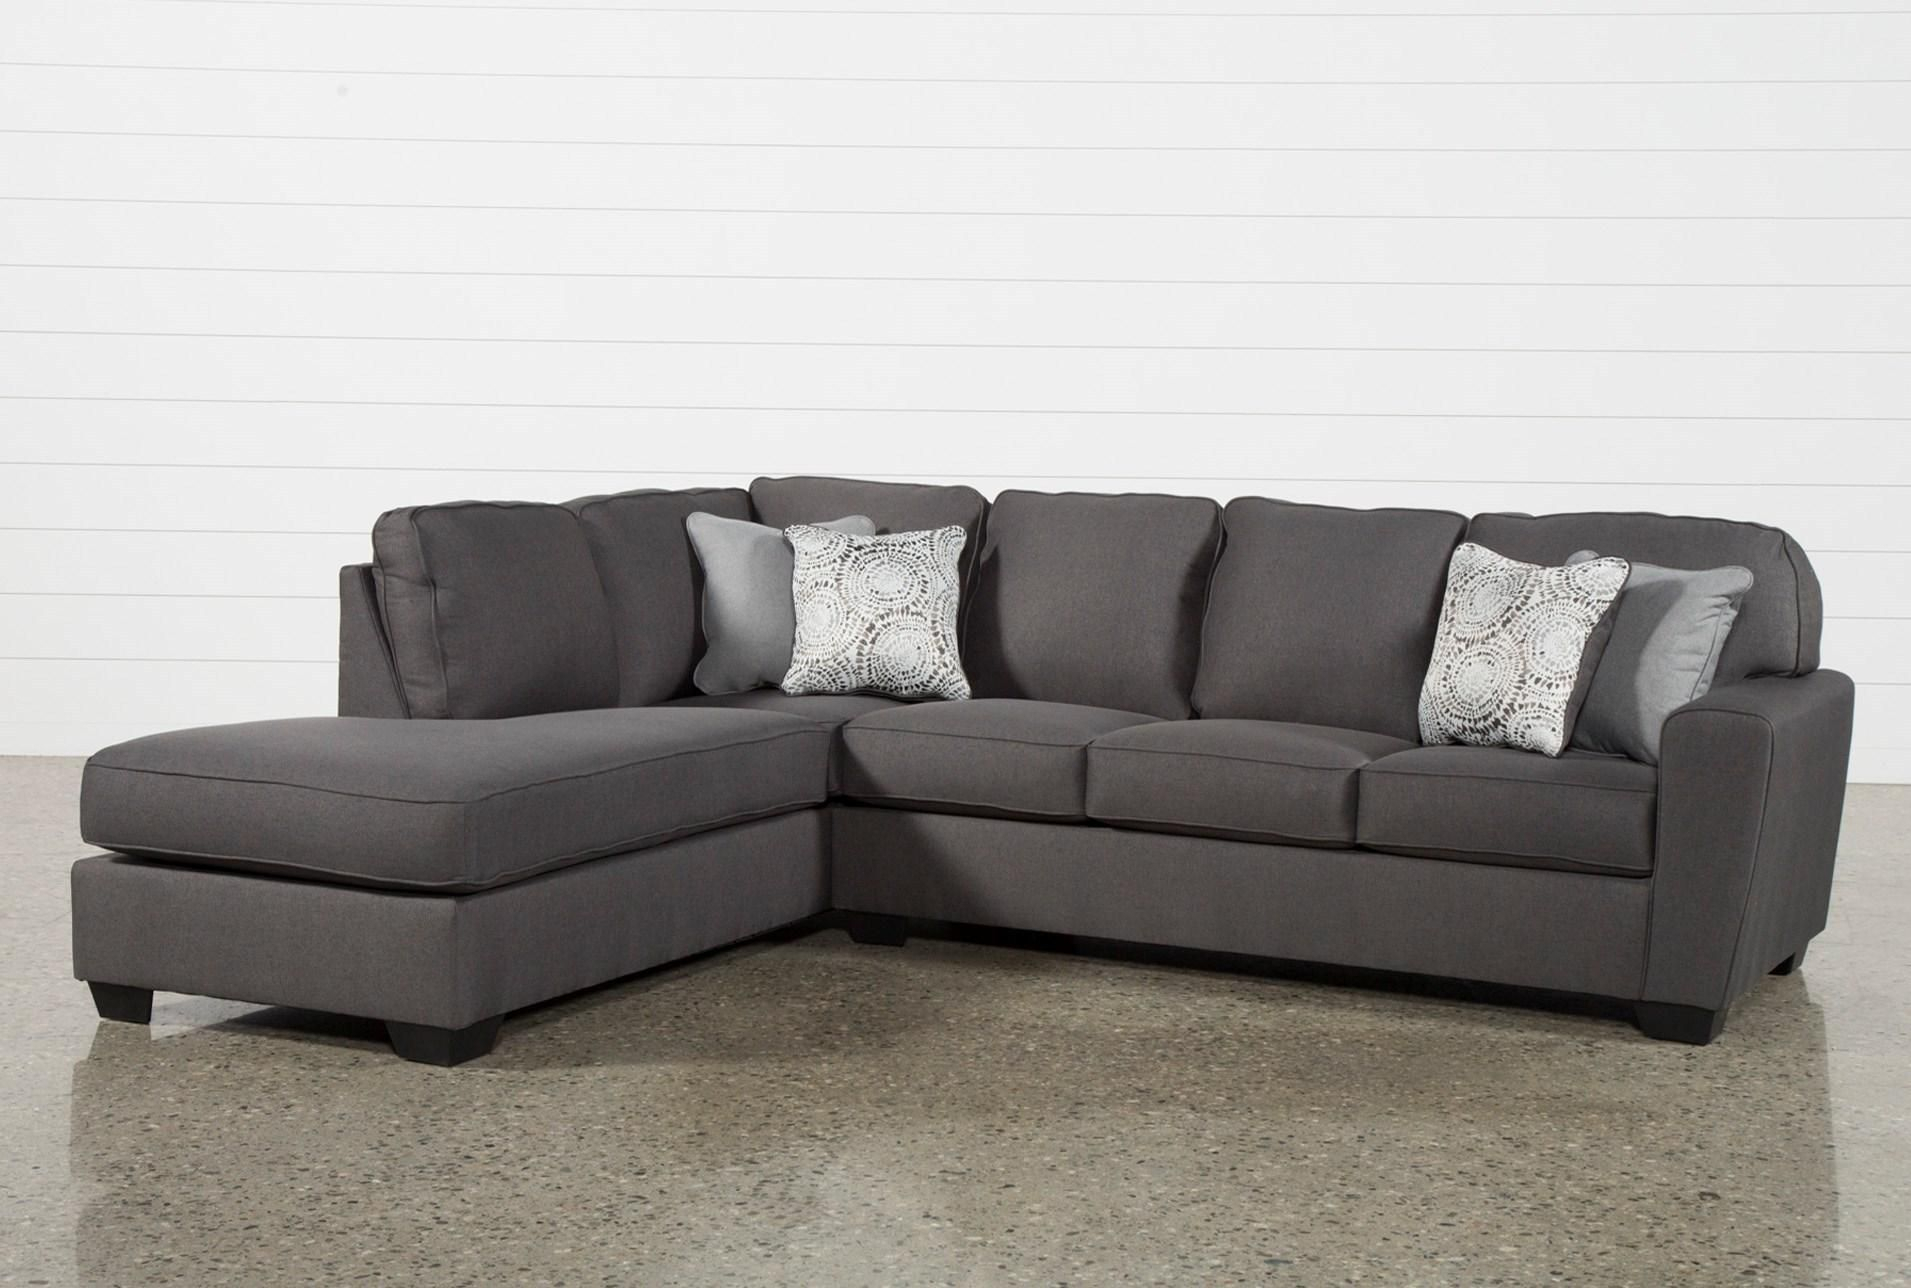 With So Many Ways To Lounge For Less, Our Mcdade Graphite 2 Piece Inside Mcdade Ash Sofa Chairs (View 4 of 25)